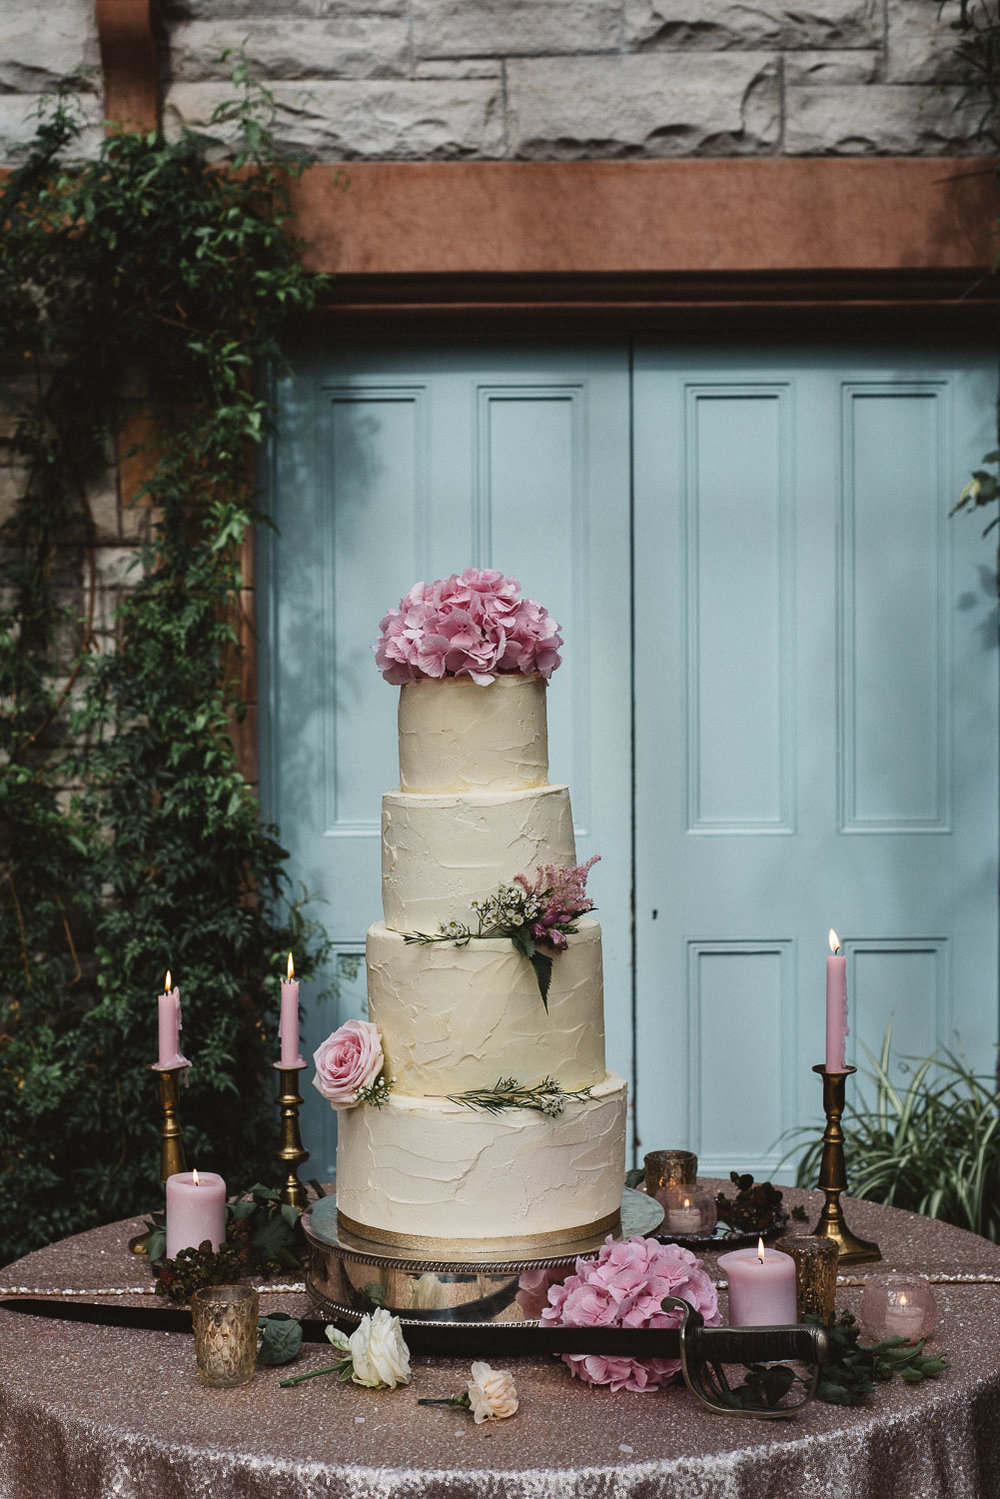 wedding cake with pink flowers and candles